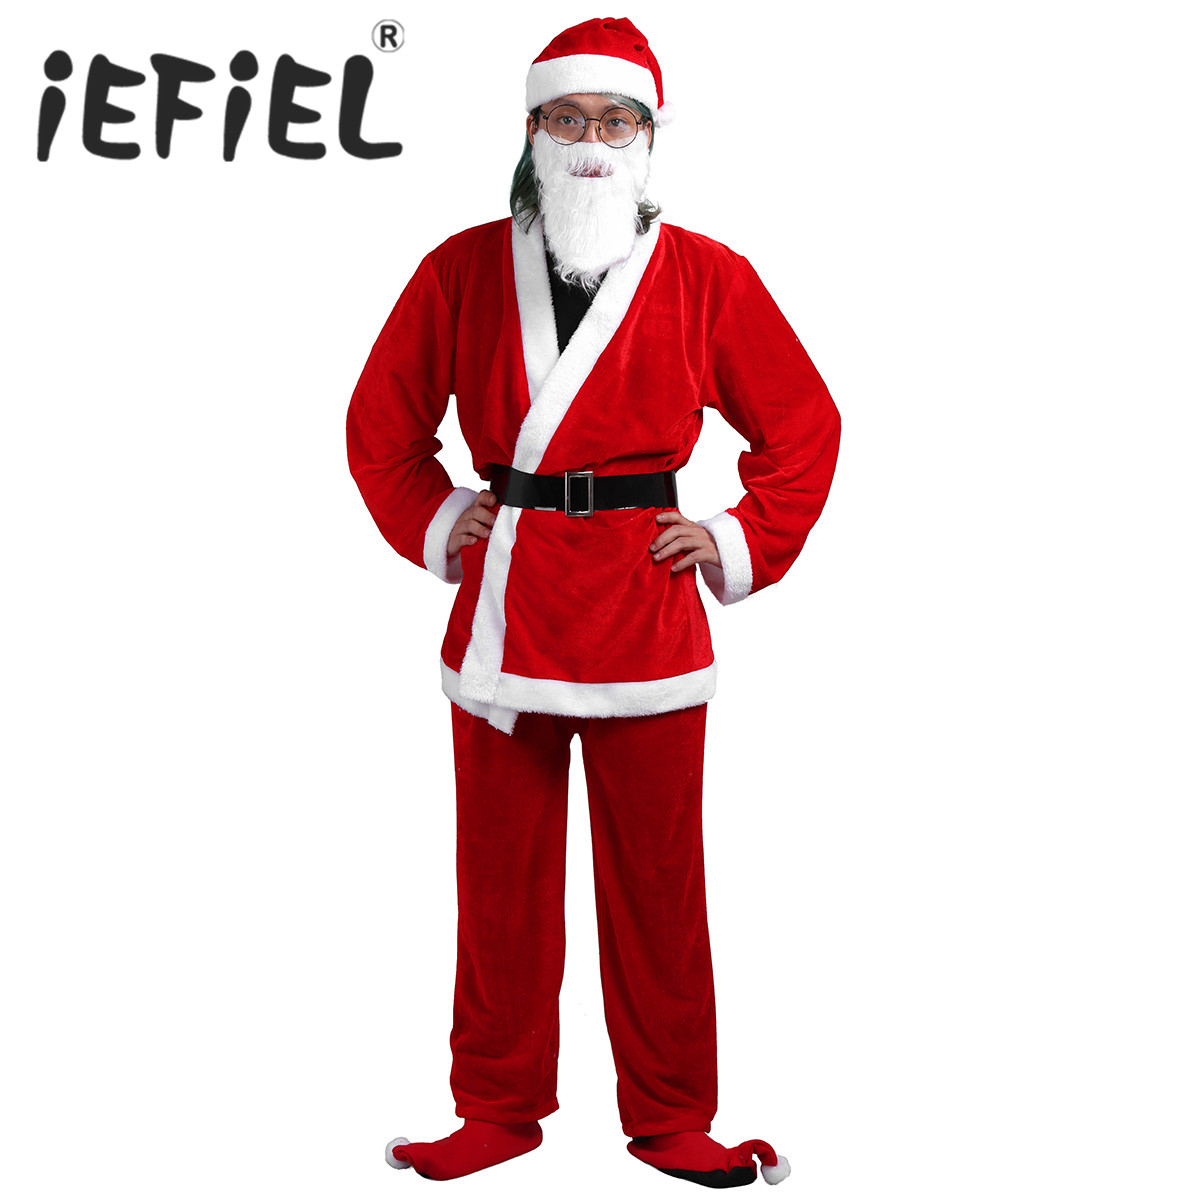 New Arrival Adults Christmas Cosplay Clothes Santa Claus Costume Red Christmas Party Santa Claus Costume Suit Women Xmas Dresses